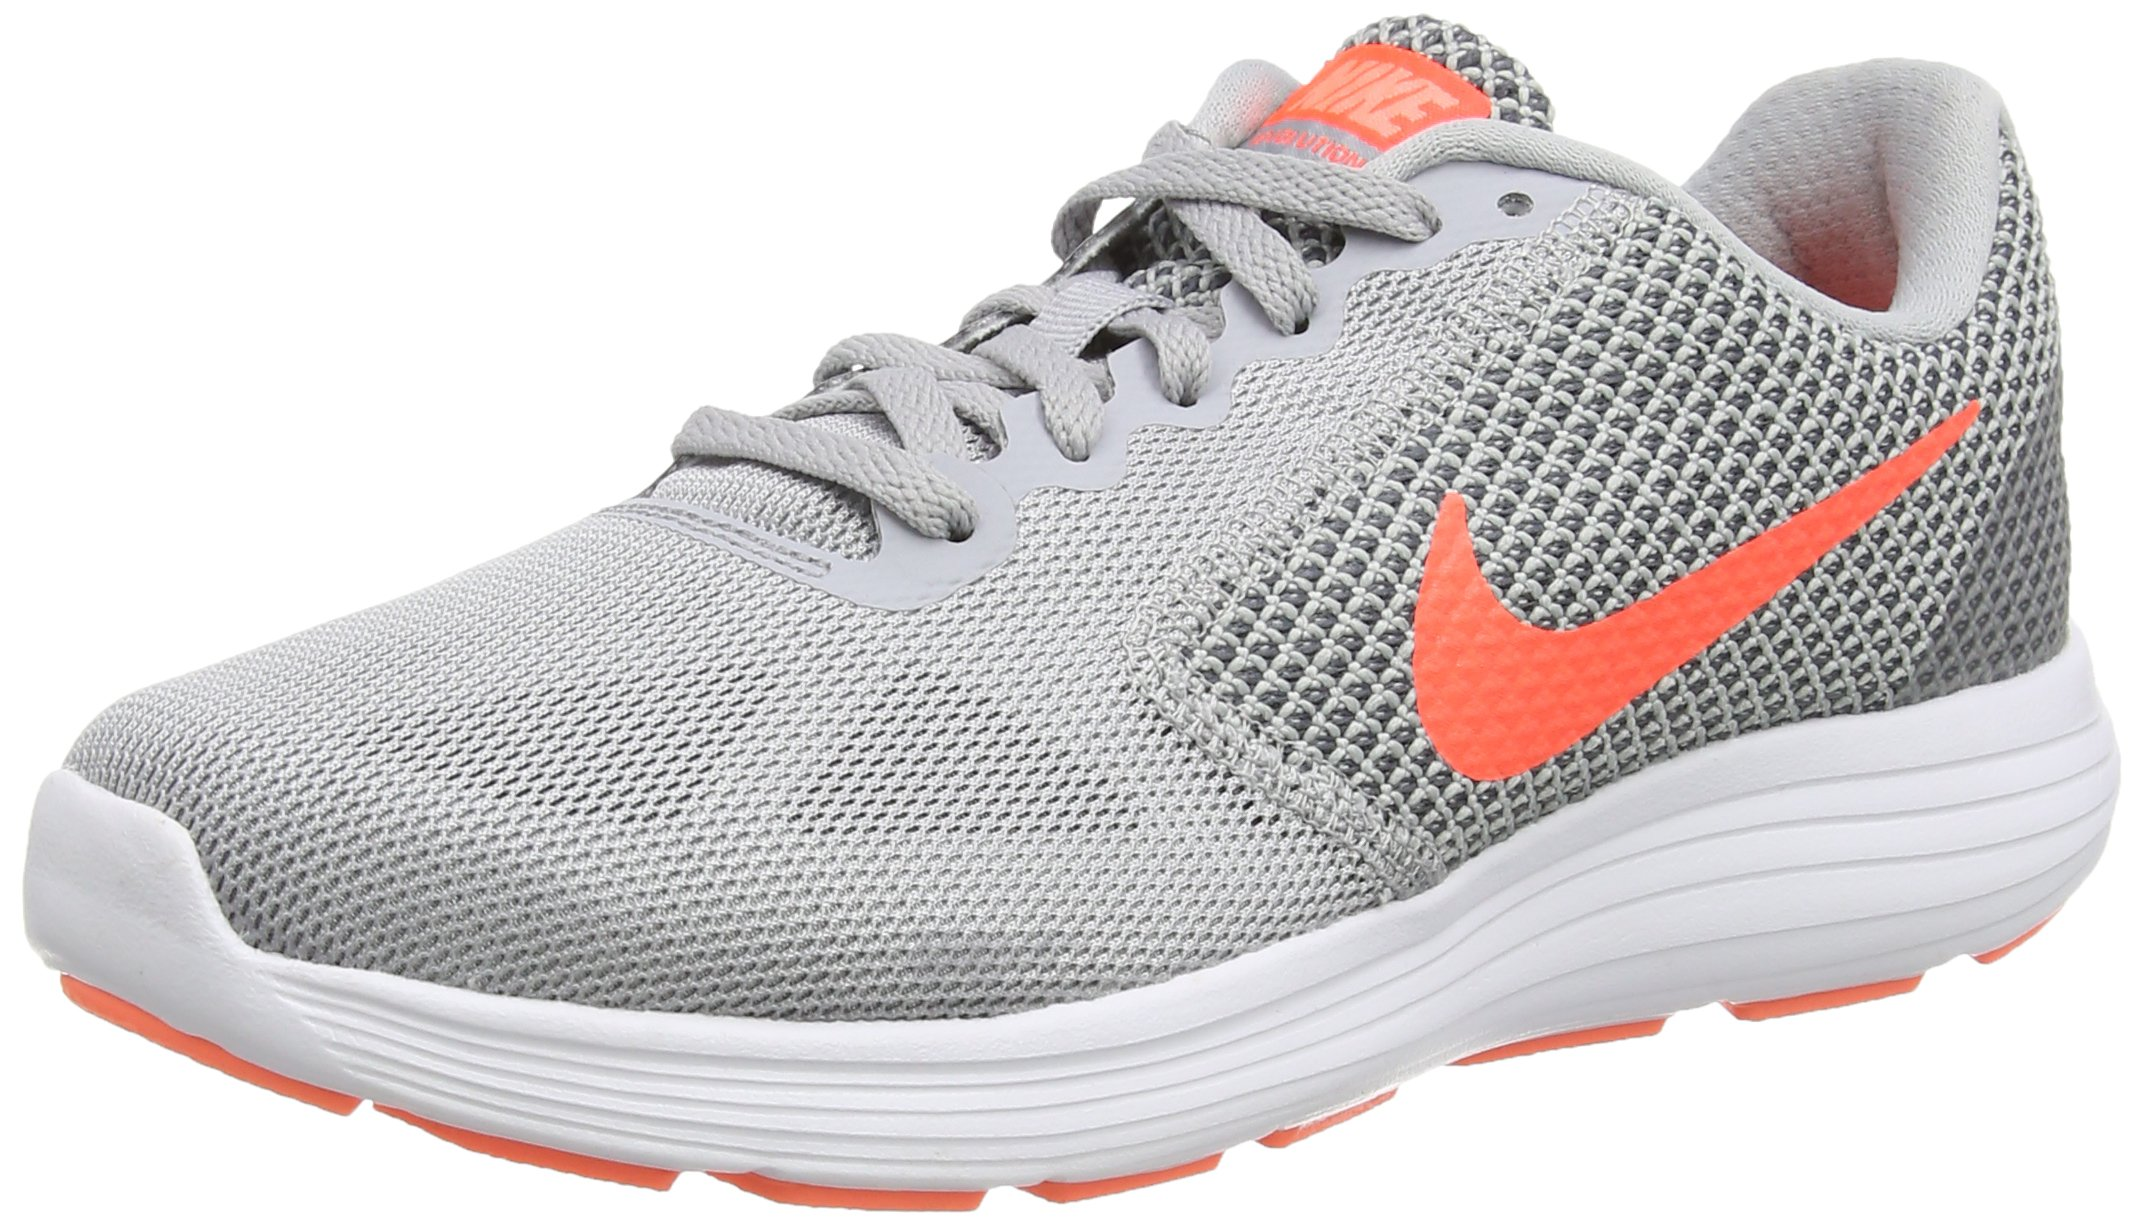 d1b8d4b54d55 Galleon - Nike WMNS Revolution 3 Women Round Toe Synthetic Running Shoe  Wolf Grey Cool Grey Atomic Pink Hyper Orange 5 B(M) US